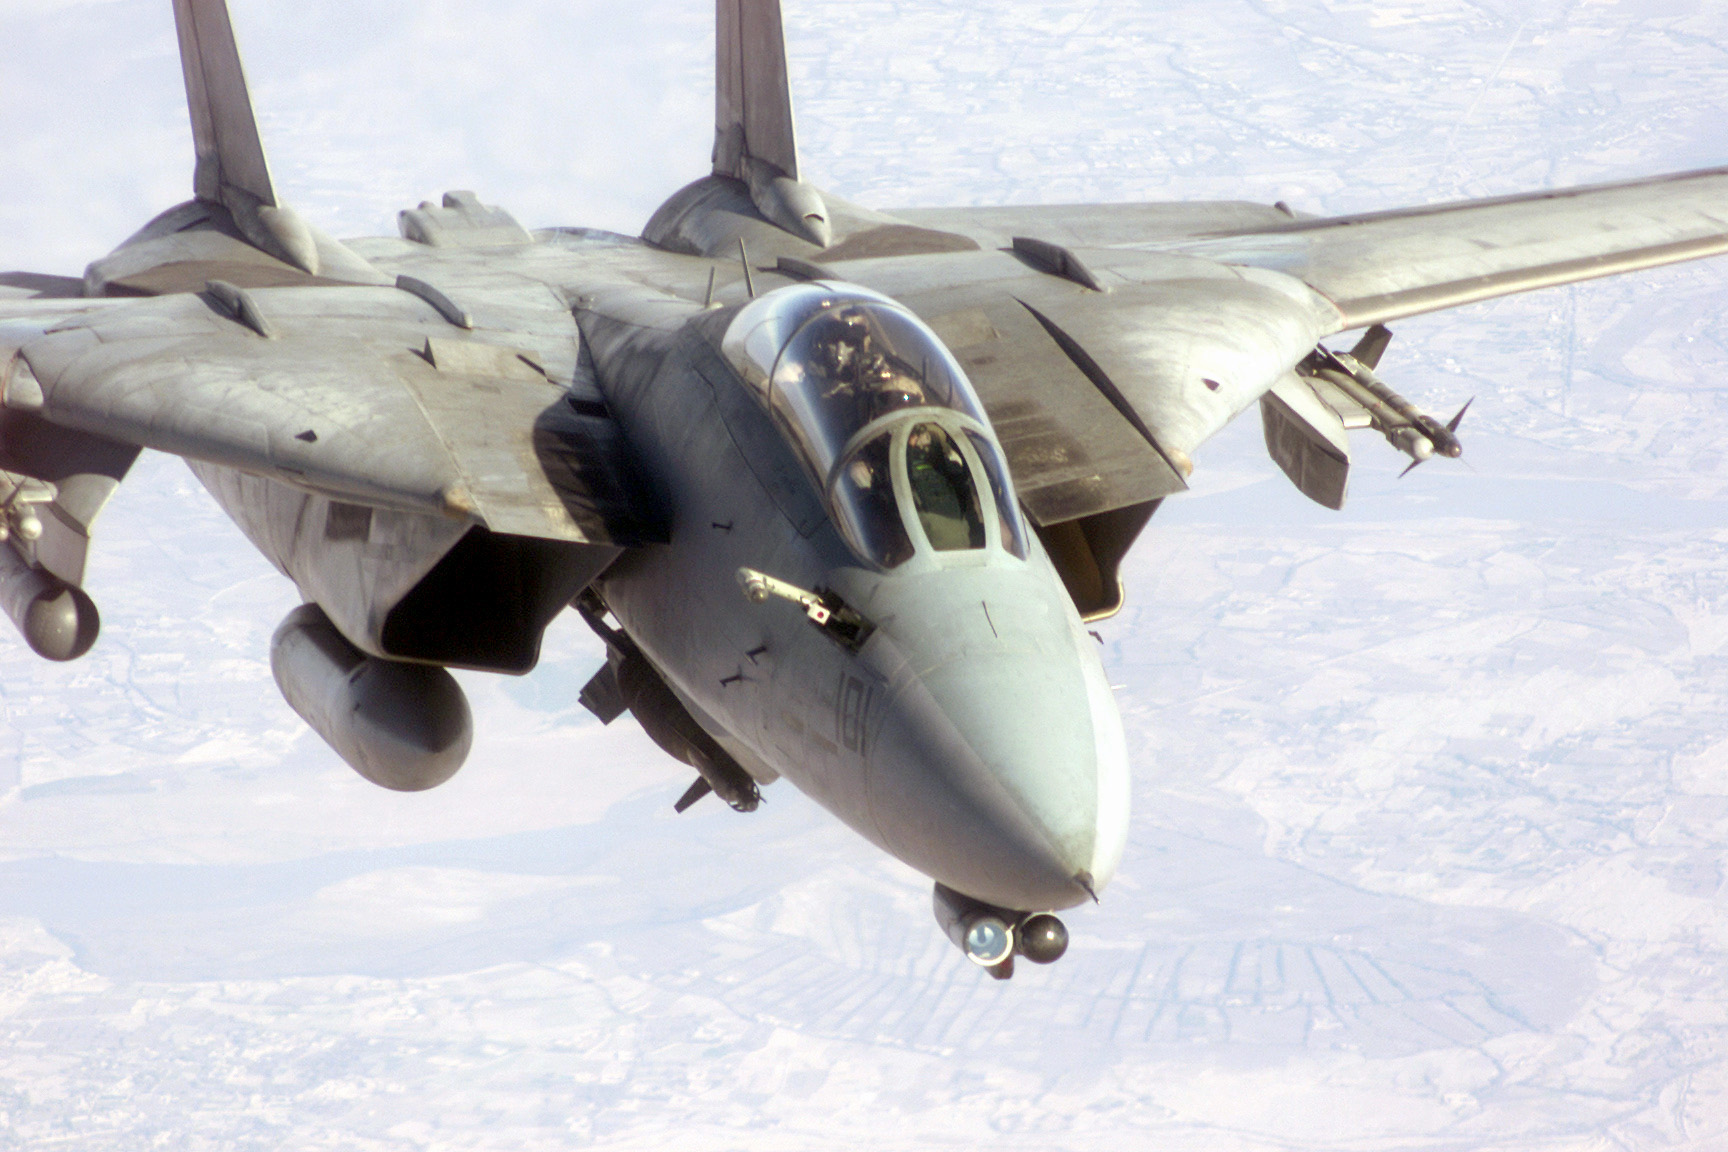 An F-14D prepares to refuel with probe extended A U.S. Navy F-14D Tomcat flies up with its refueling probe out preparing to connect with a tanker. The F-14 is armed with two AIM 9 Sidewinder missiles, a Paveway II Laser Guided GBU-10 2,000-pound bomb, and LANTIRN Pod, as it prepares for a bombing mission over Afghanistan in support of Operation ENDURING FREEDOM.Camera Operator: SSGT MICHAEL D. GADDIS, USAF - ID:DF-SD-03-06180 / Service Depicted: Navy / 011107-F-5795G-006 / Operation / Series: ENDURING FREEDOM. ( Image via Wikipedia)